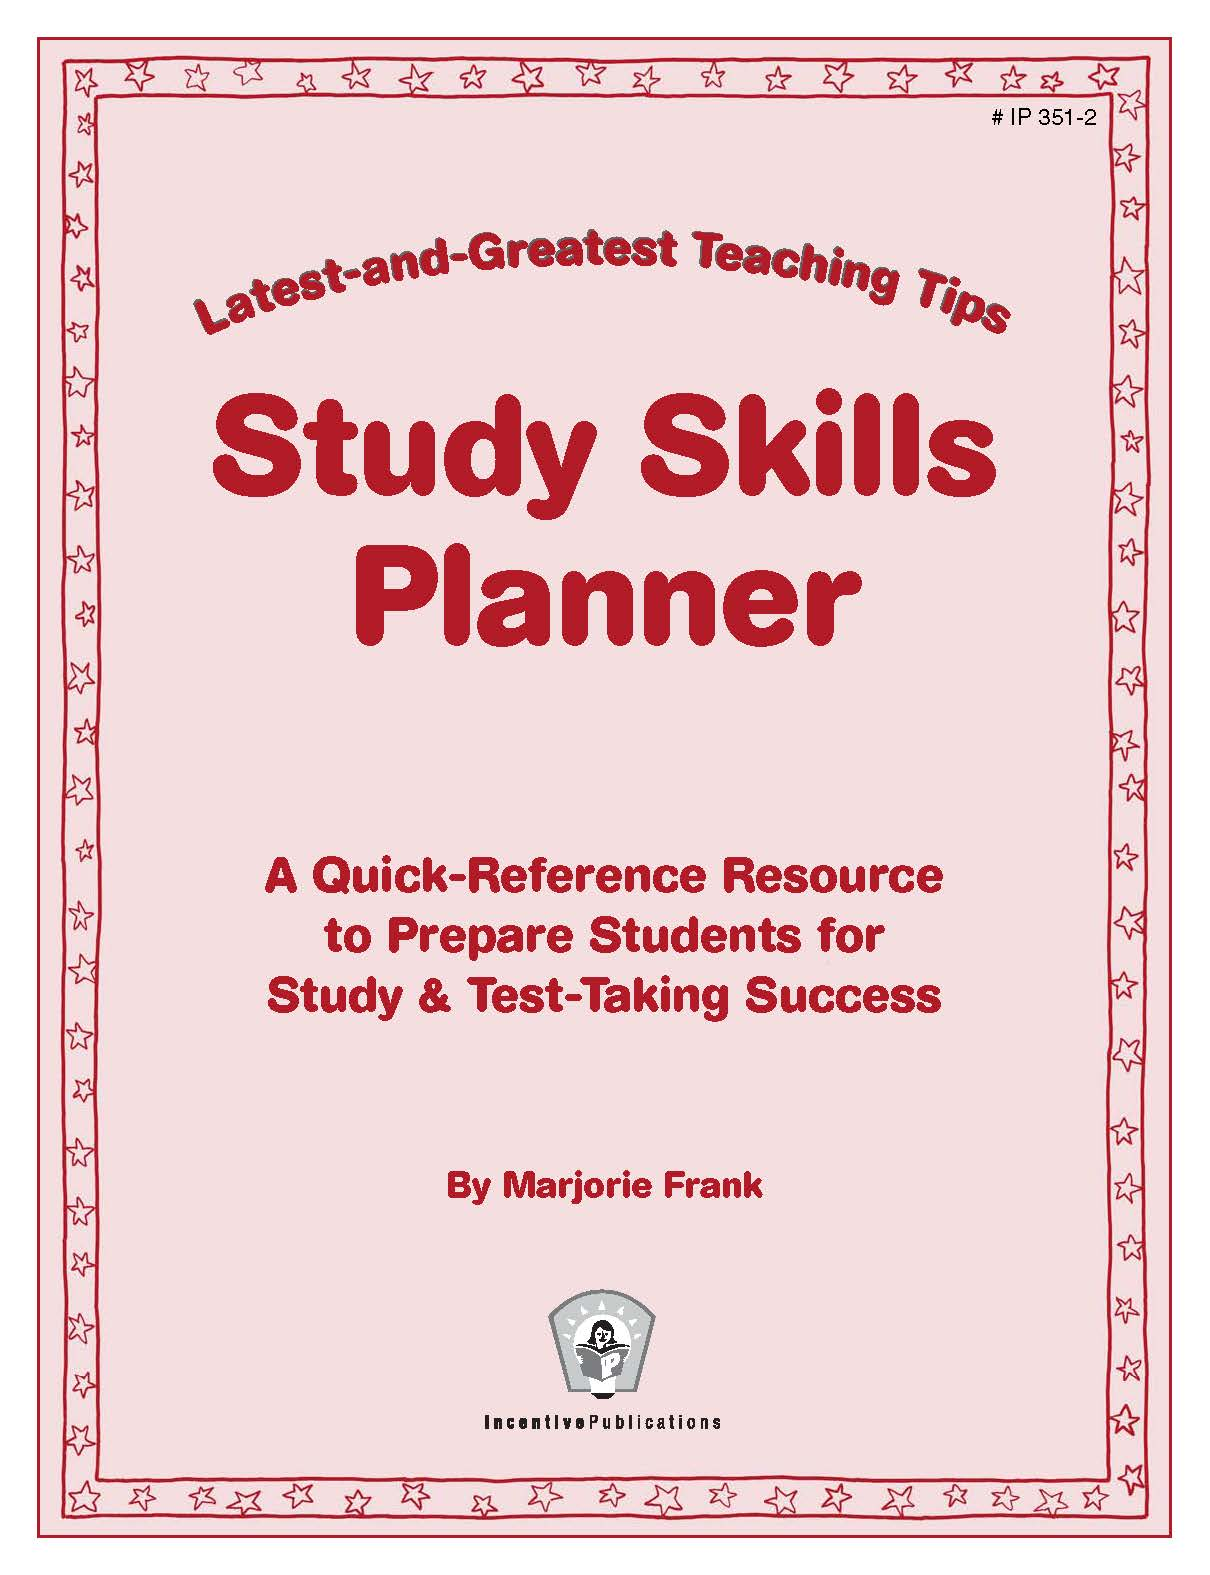 Study Skills Planner Latest and Greatest Teaching Tips cover